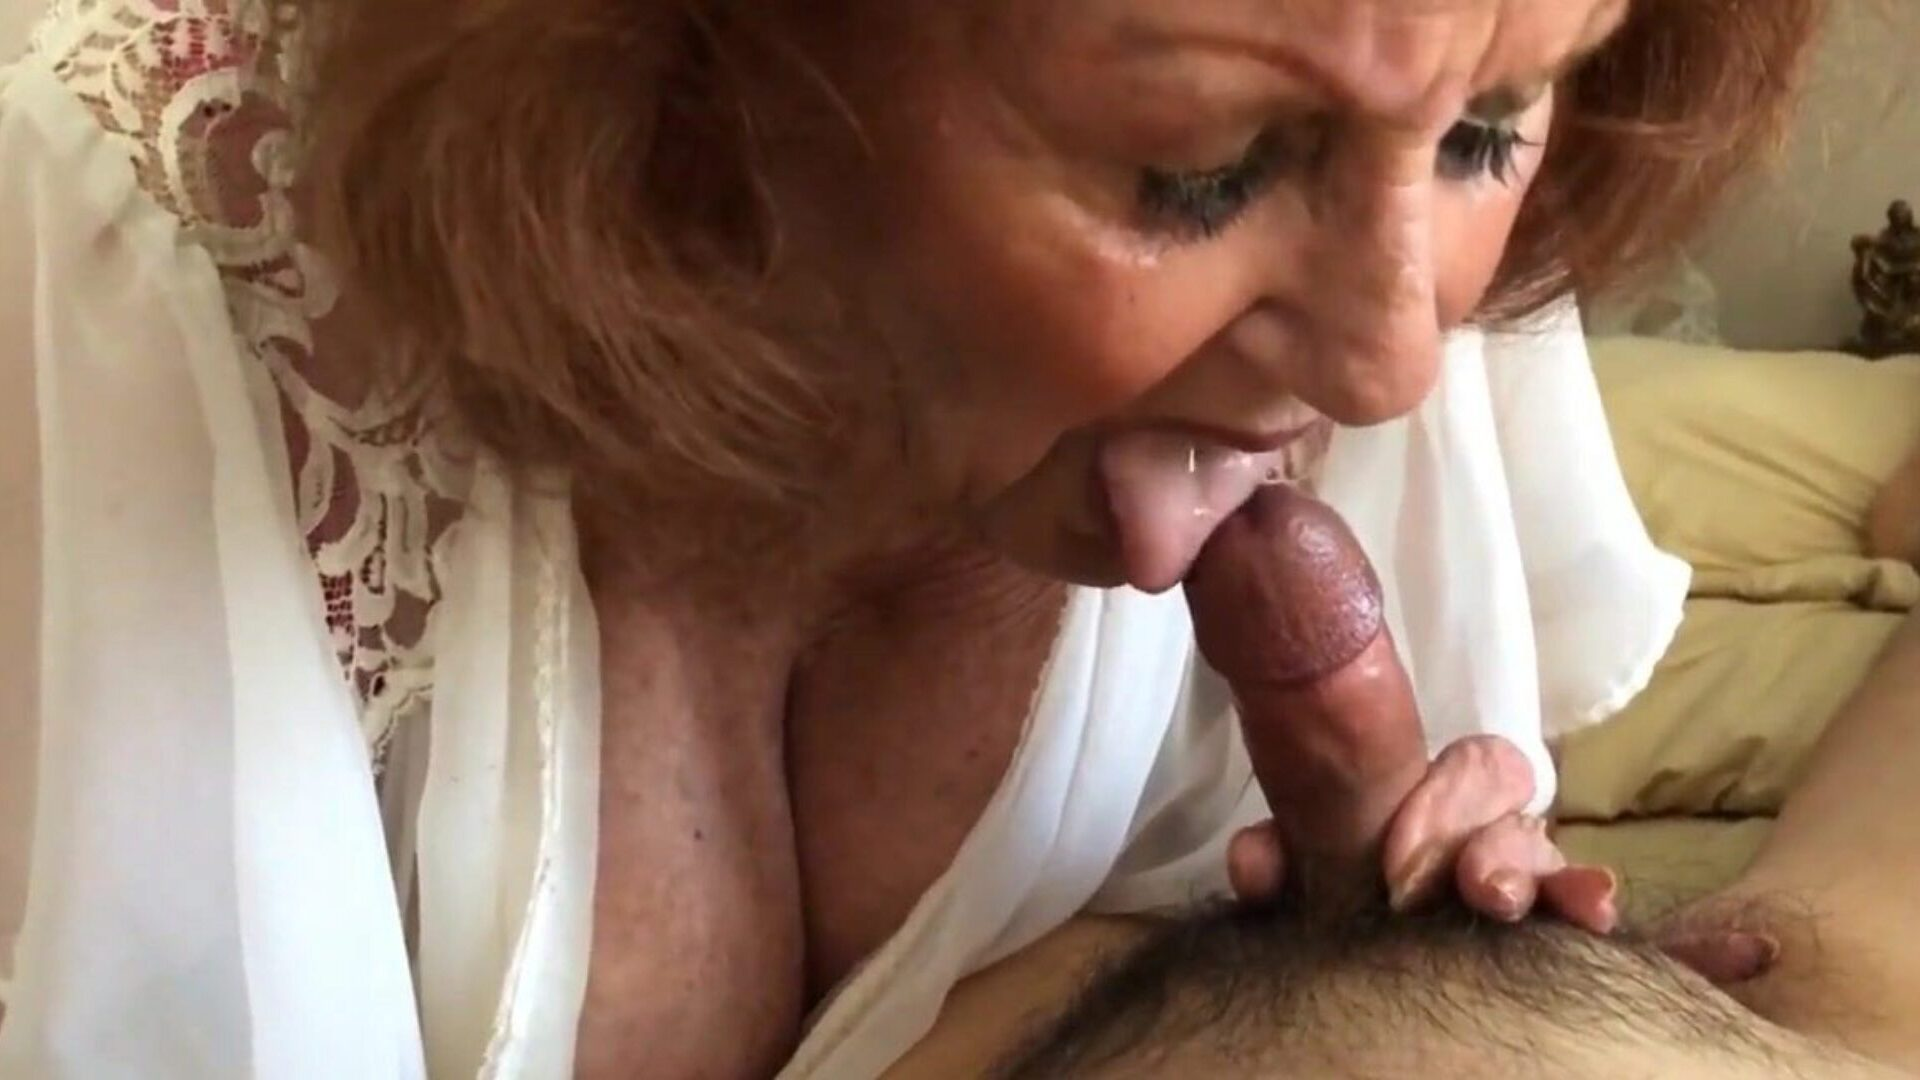 The Hottest Amateur Granny Still Craving Young Cock... Watch The Hottest Amateur Granny Still Craving Young Cock movie scene on xHamster - the ultimate database of free Mature & Nice Ass HD xxx porn tube vids